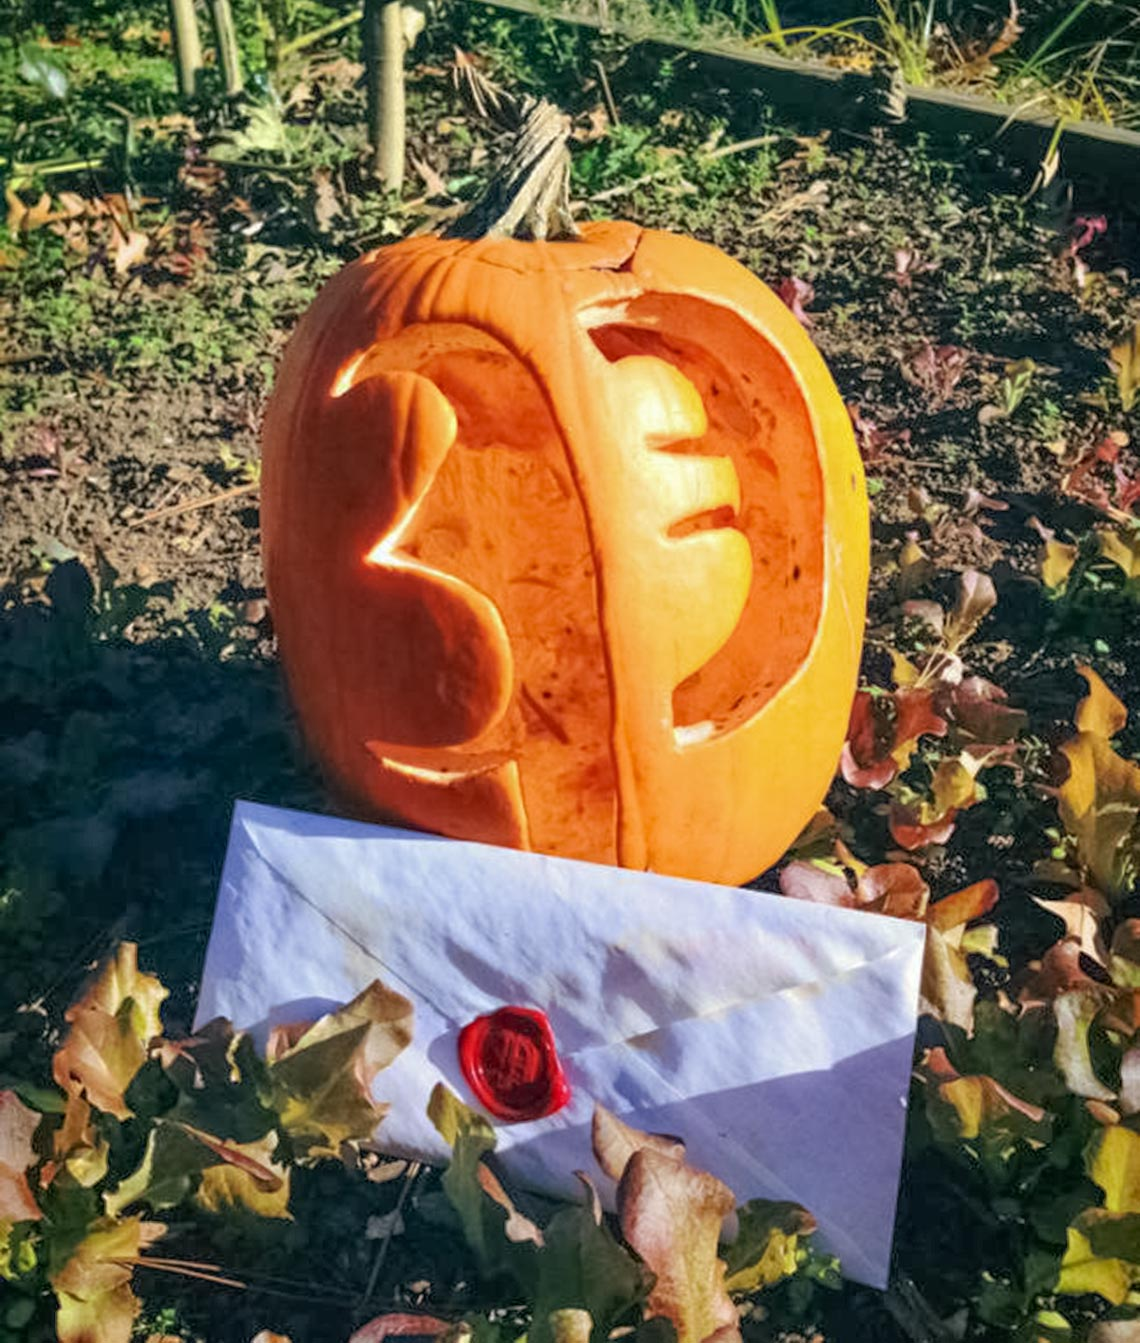 An envelope sealed with red wax in front of a pumpkin carved with the letter P.